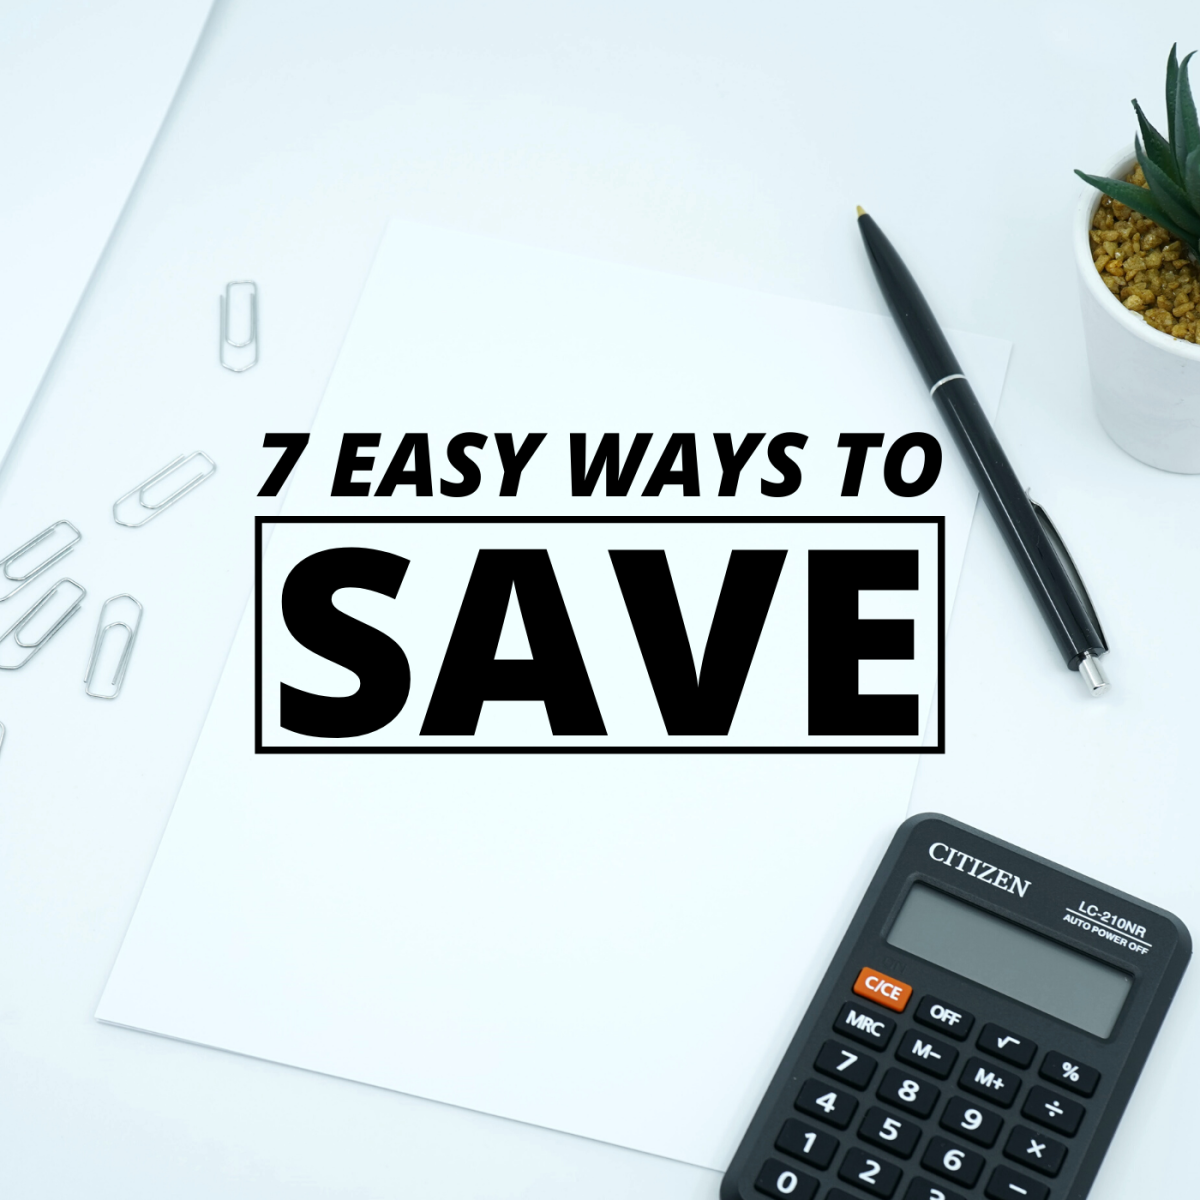 When it's easy to spend and hard to save, make these simple changes for the sake of your finances.